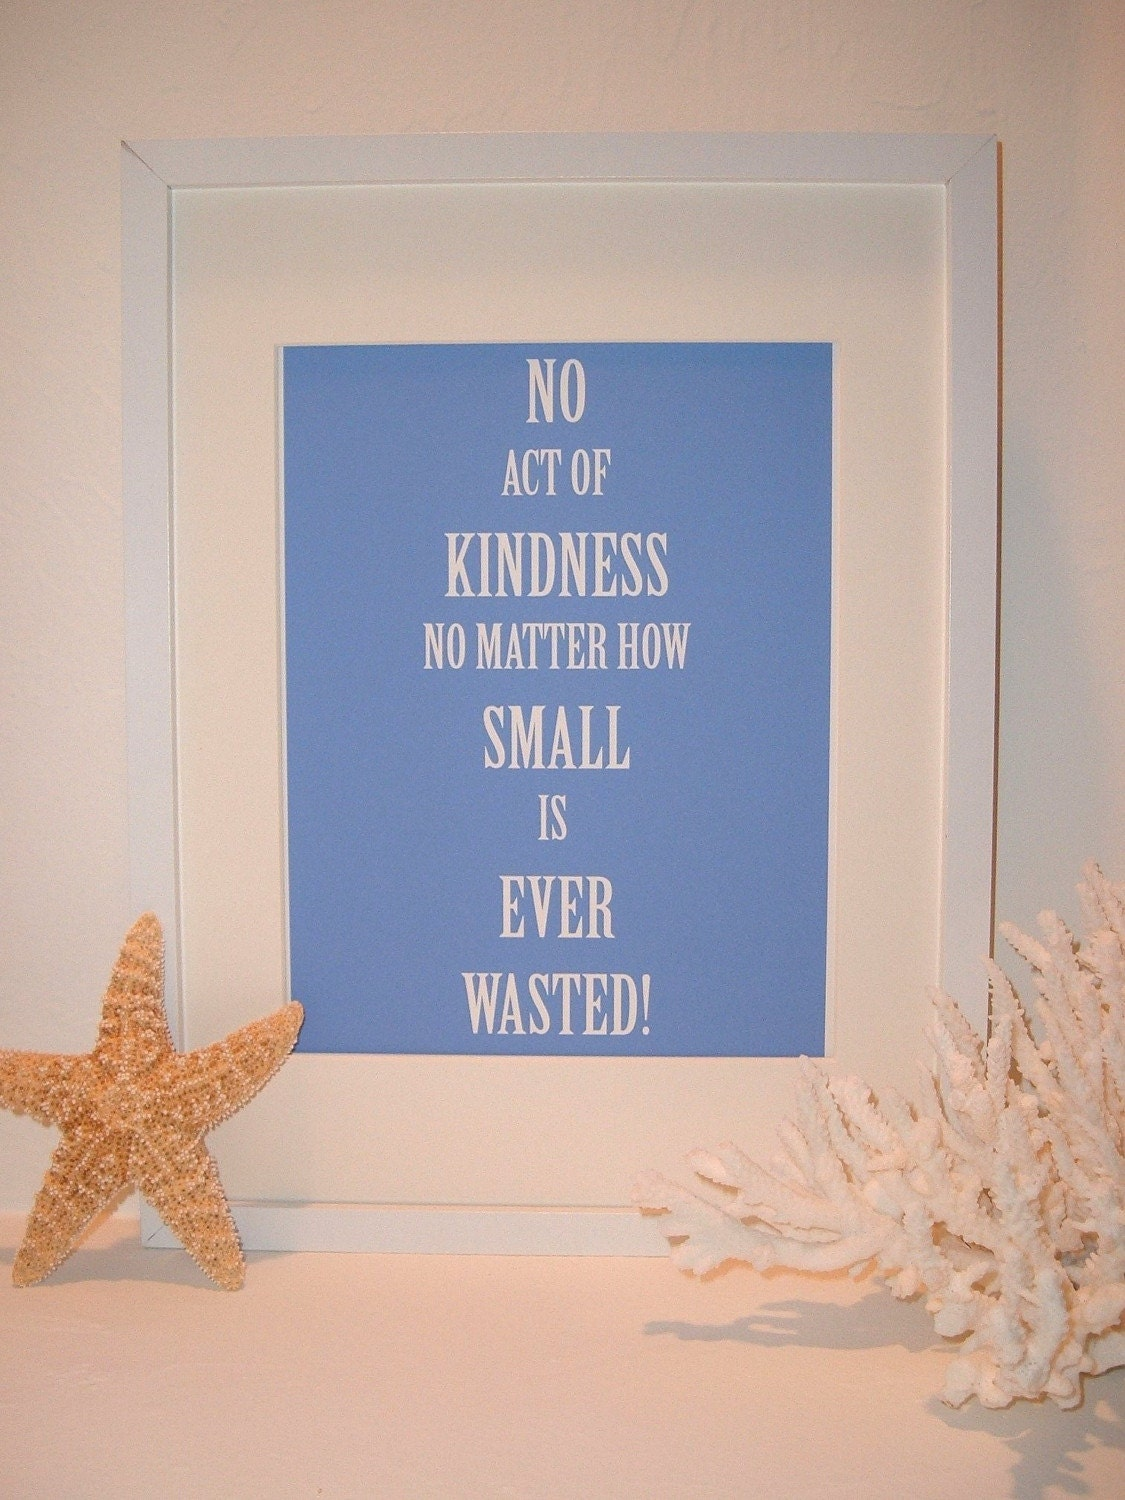 NO ACT OF KINDNESS - QUOTE PRINT